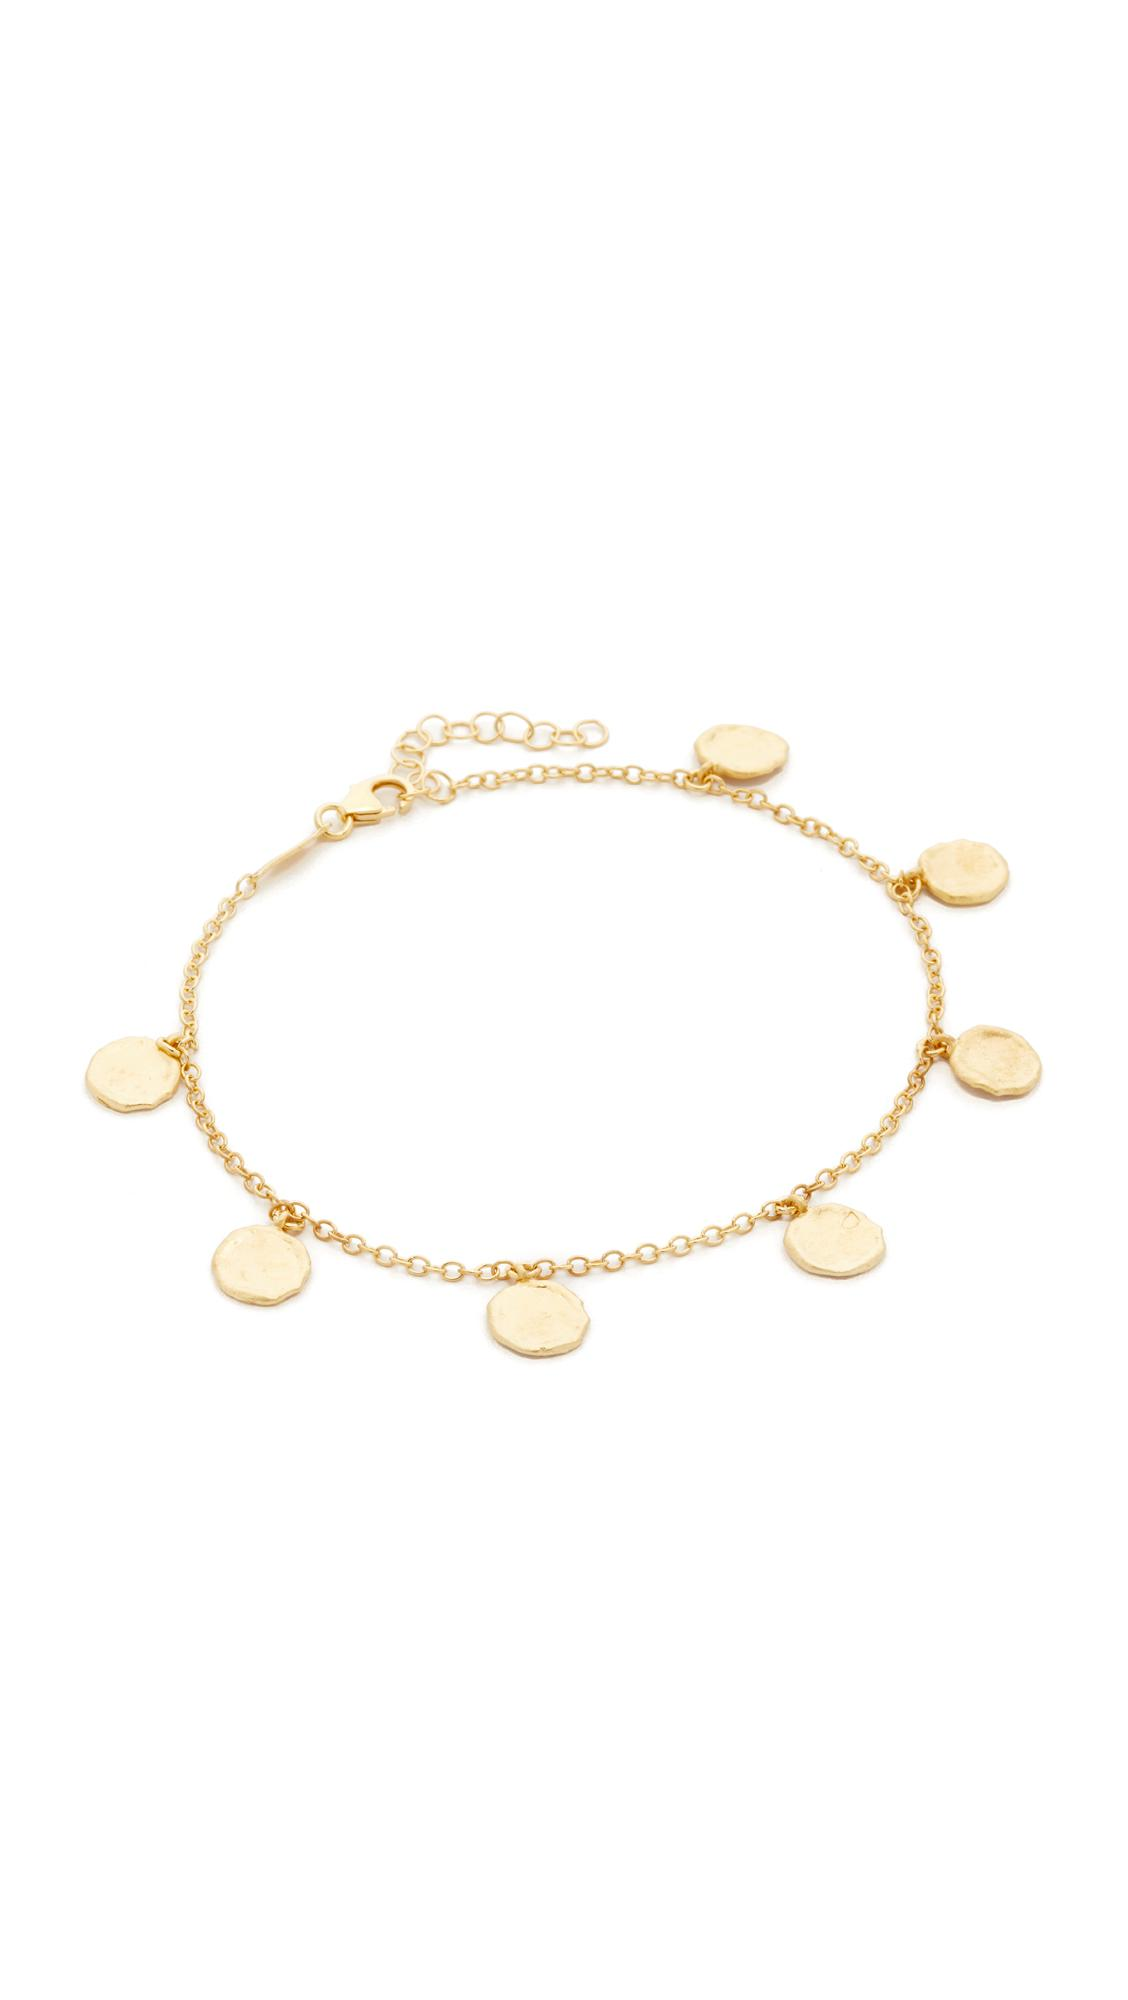 jacquie diamond shaker rg aiche products anklet